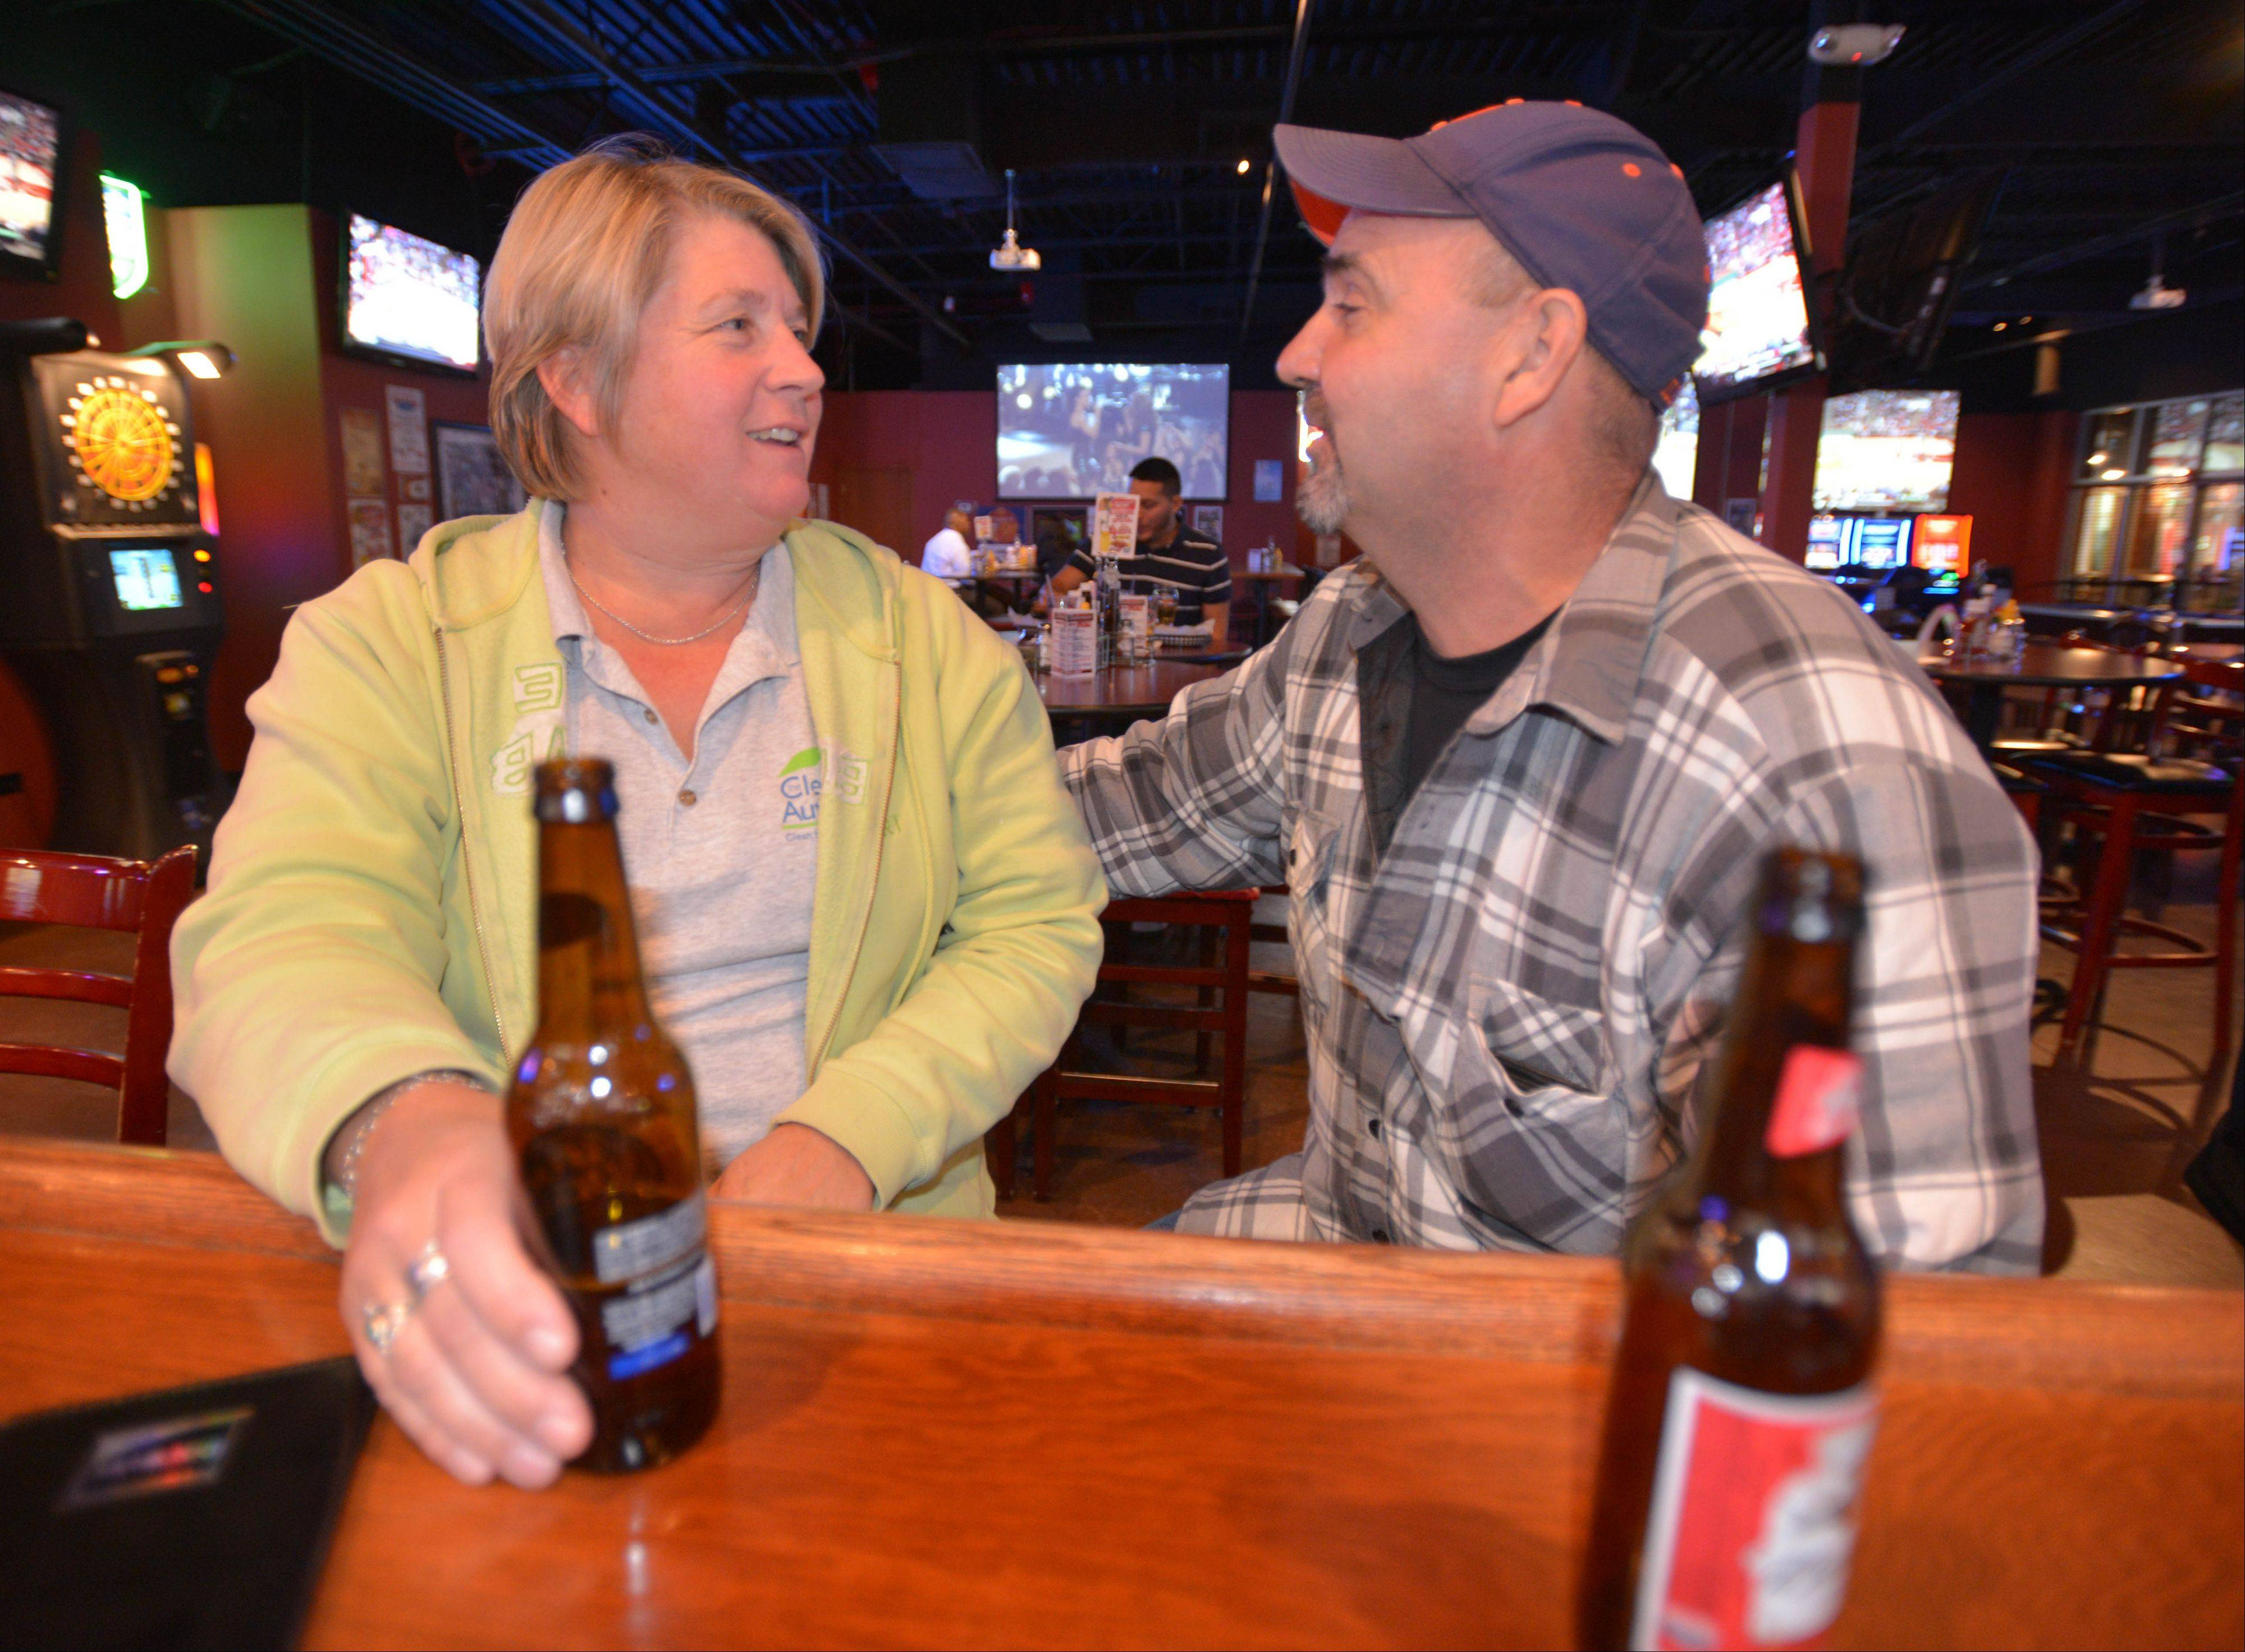 Shelli and John Giba of Aurora enjoy a beer at The Town Bar & Grill in Aurora.